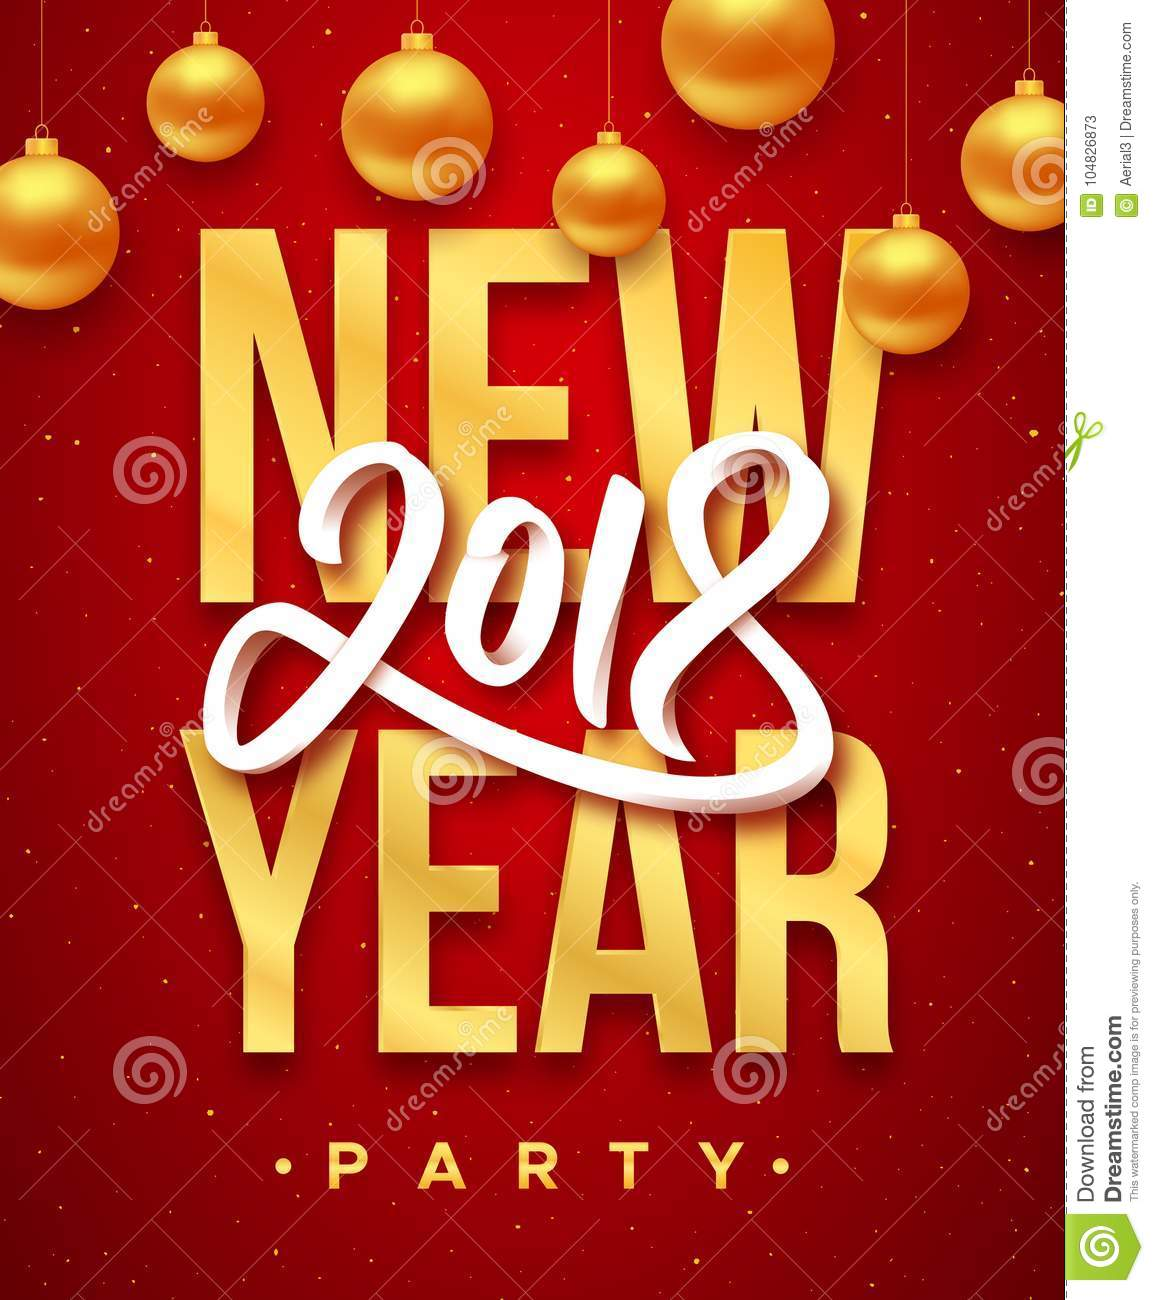 new year 2018 party invitation